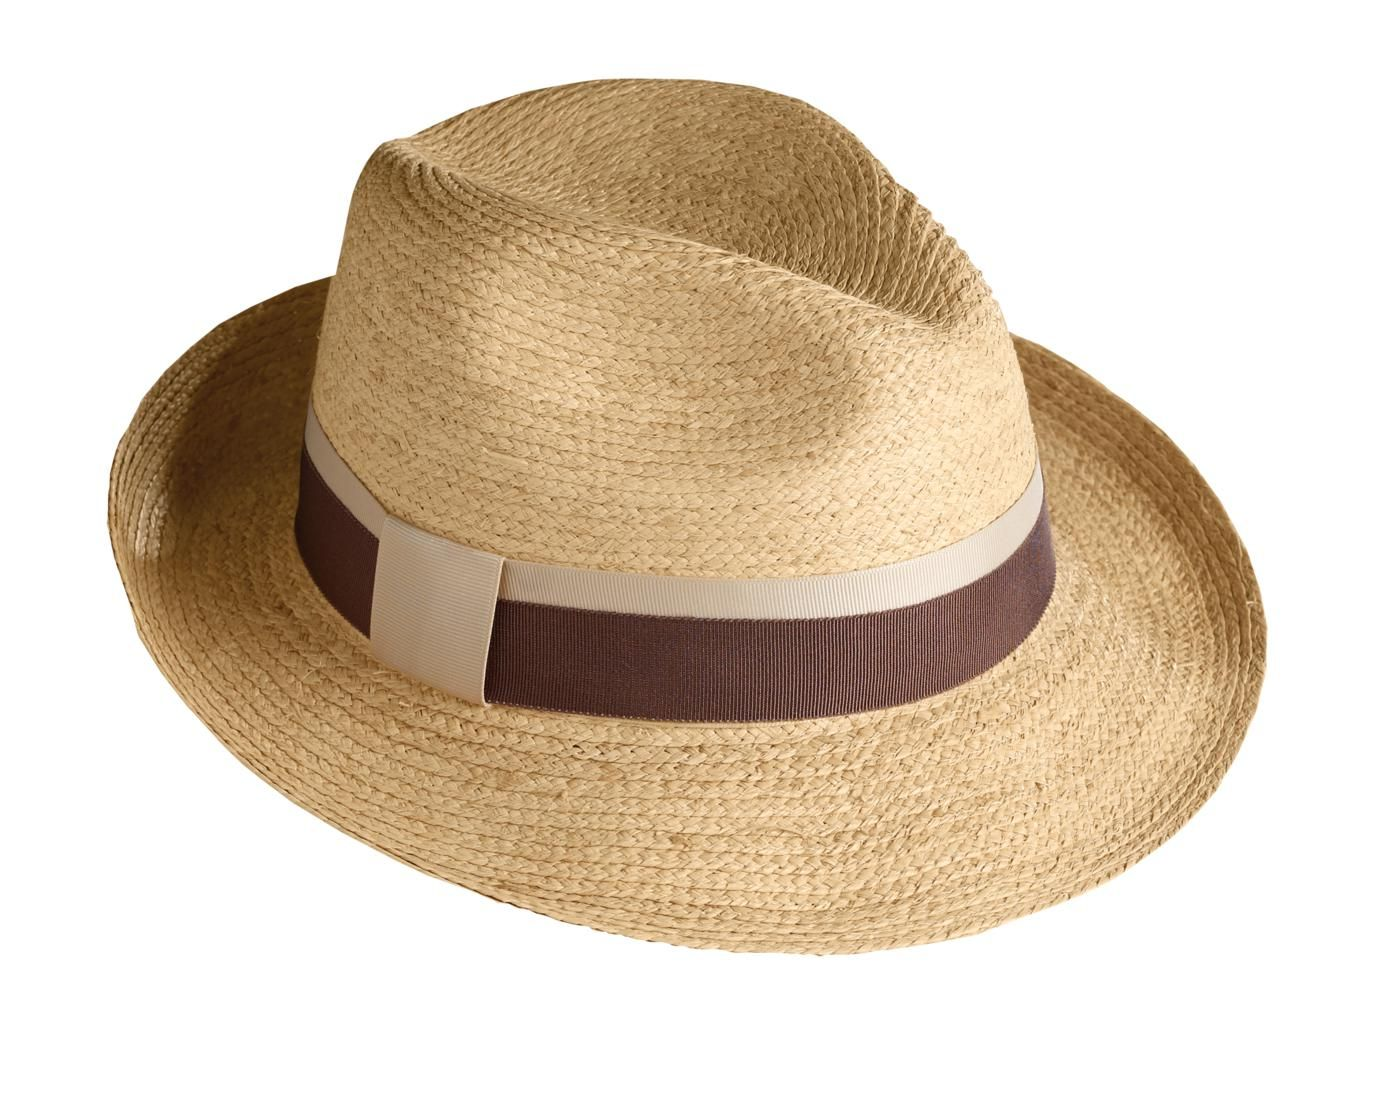 c68af7ed5b8 Tilley R7 Medium Brim Raffia Town Hat. Hat features ties for windy weather.  Excellent sun protection